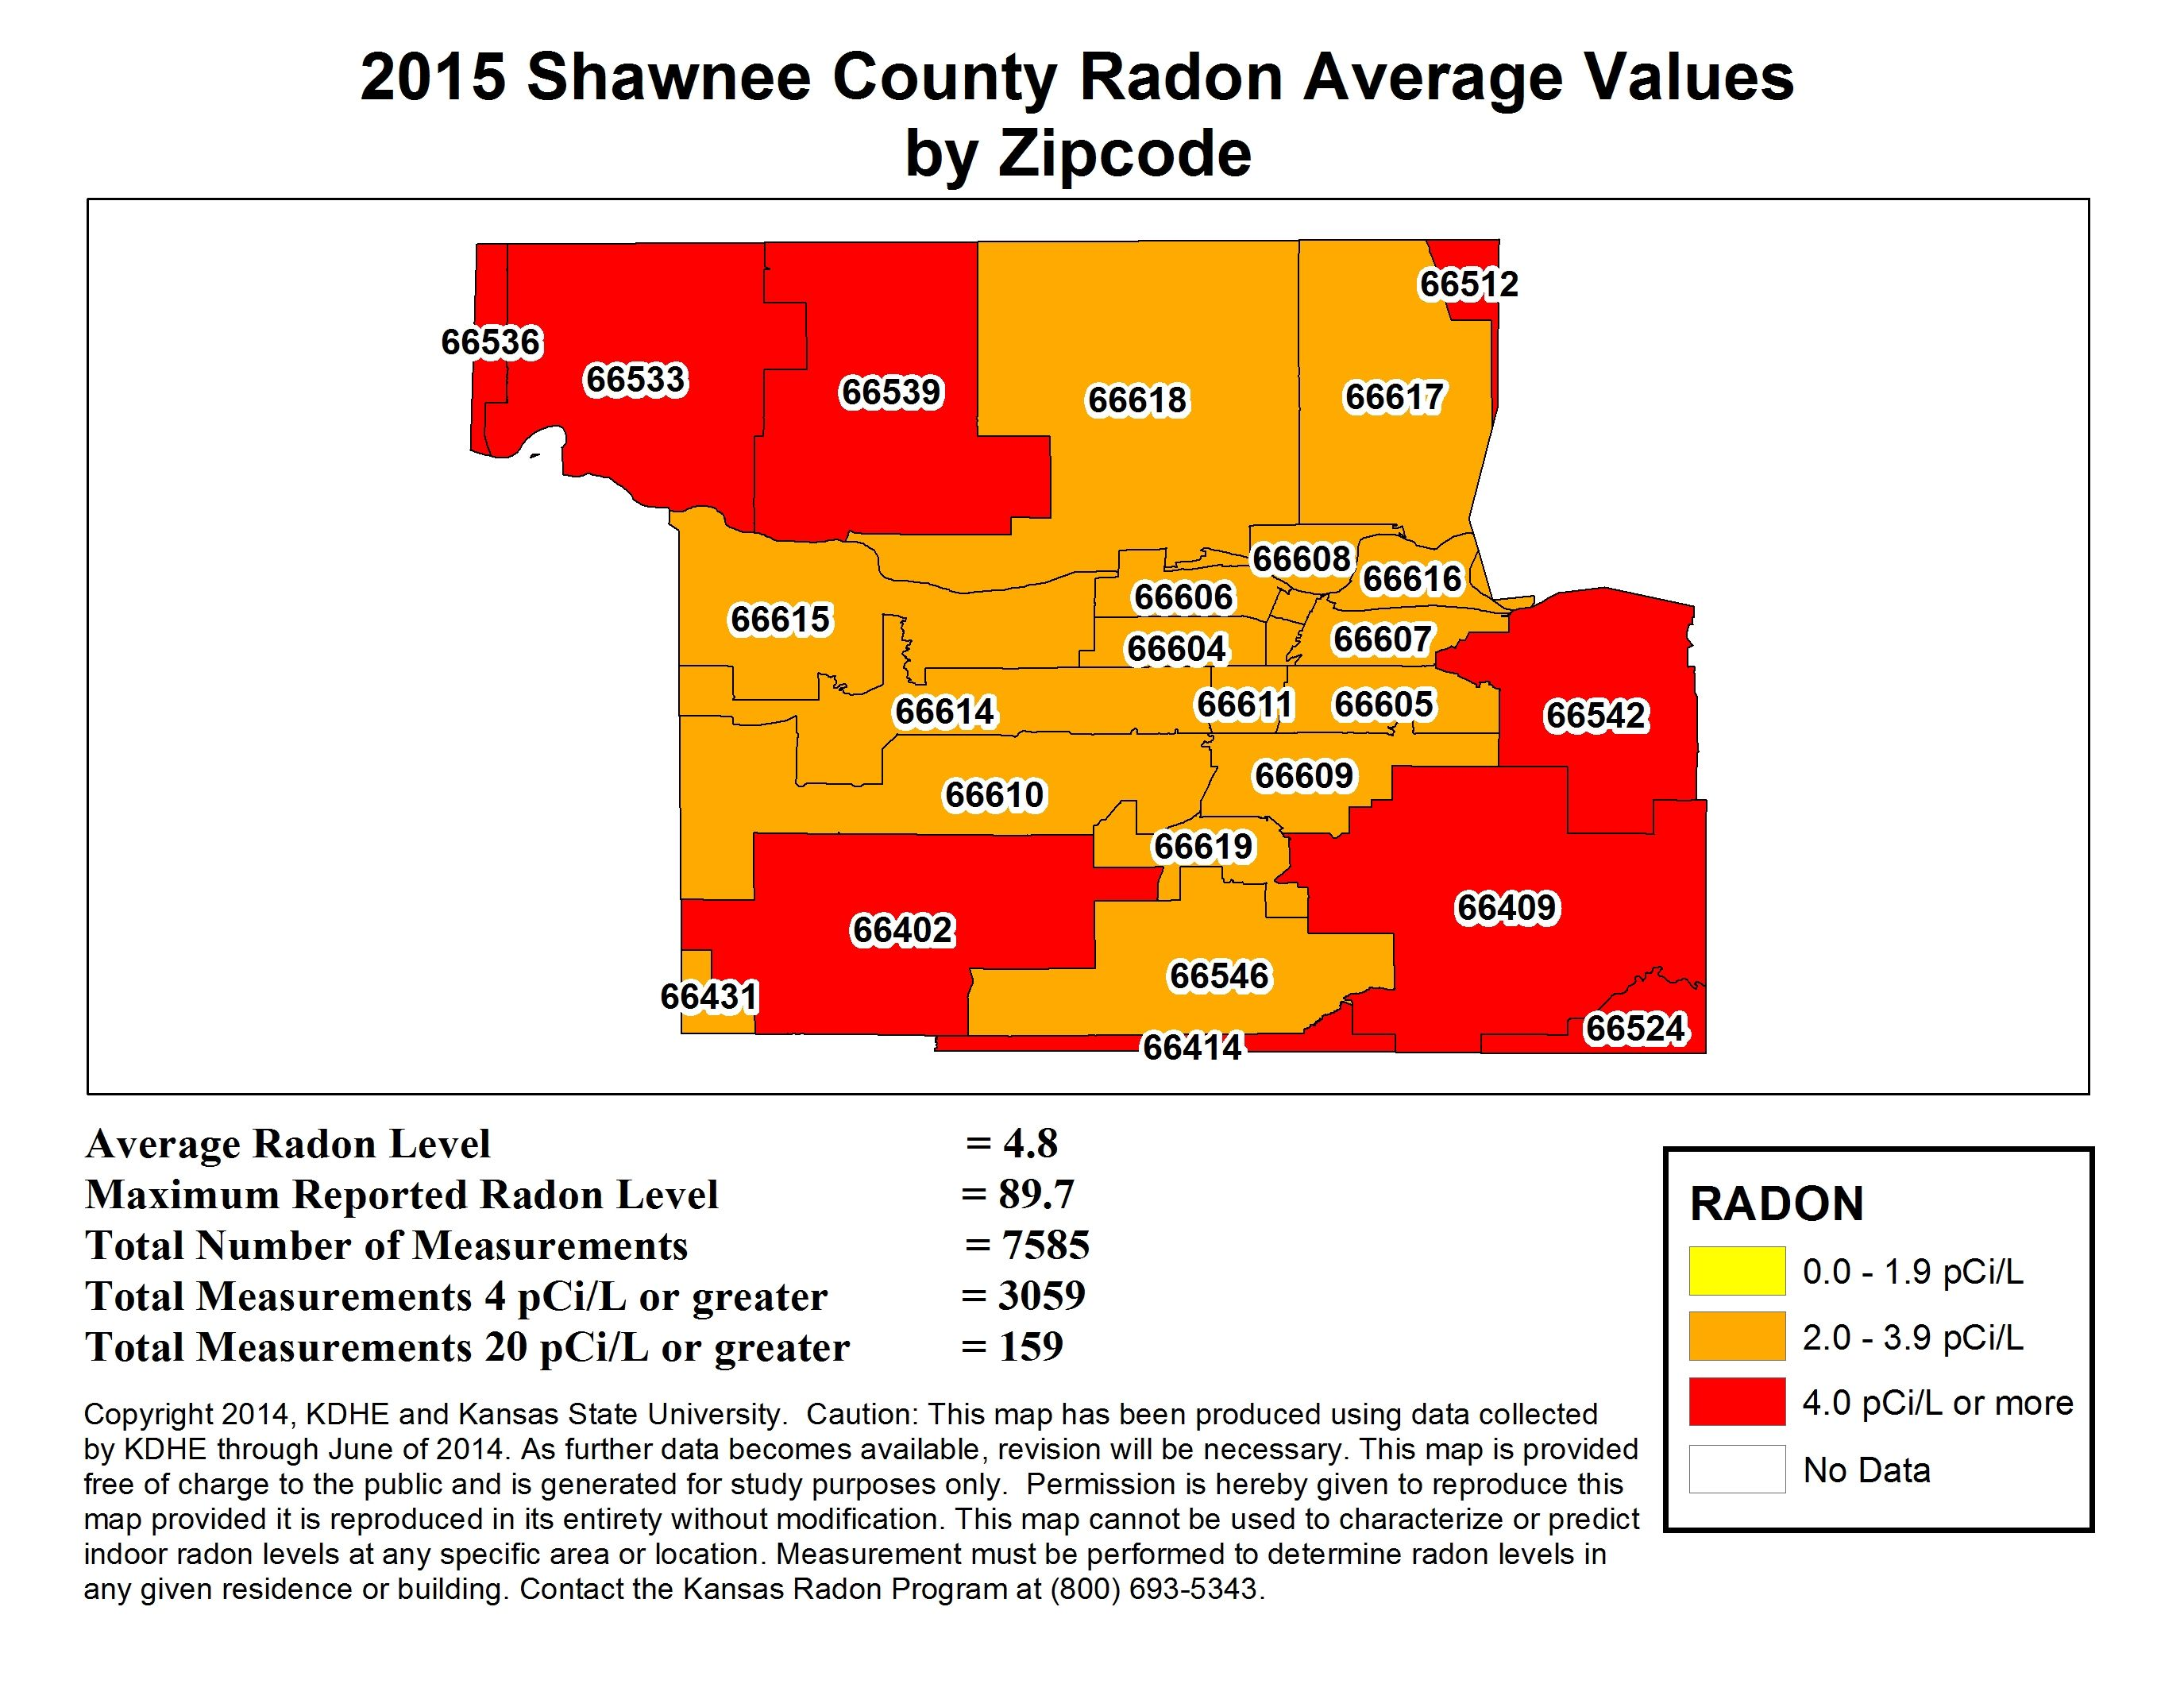 shawnee zip code map In Shawnee County The Average Radon Levels Are 4 8 Pci L Radon